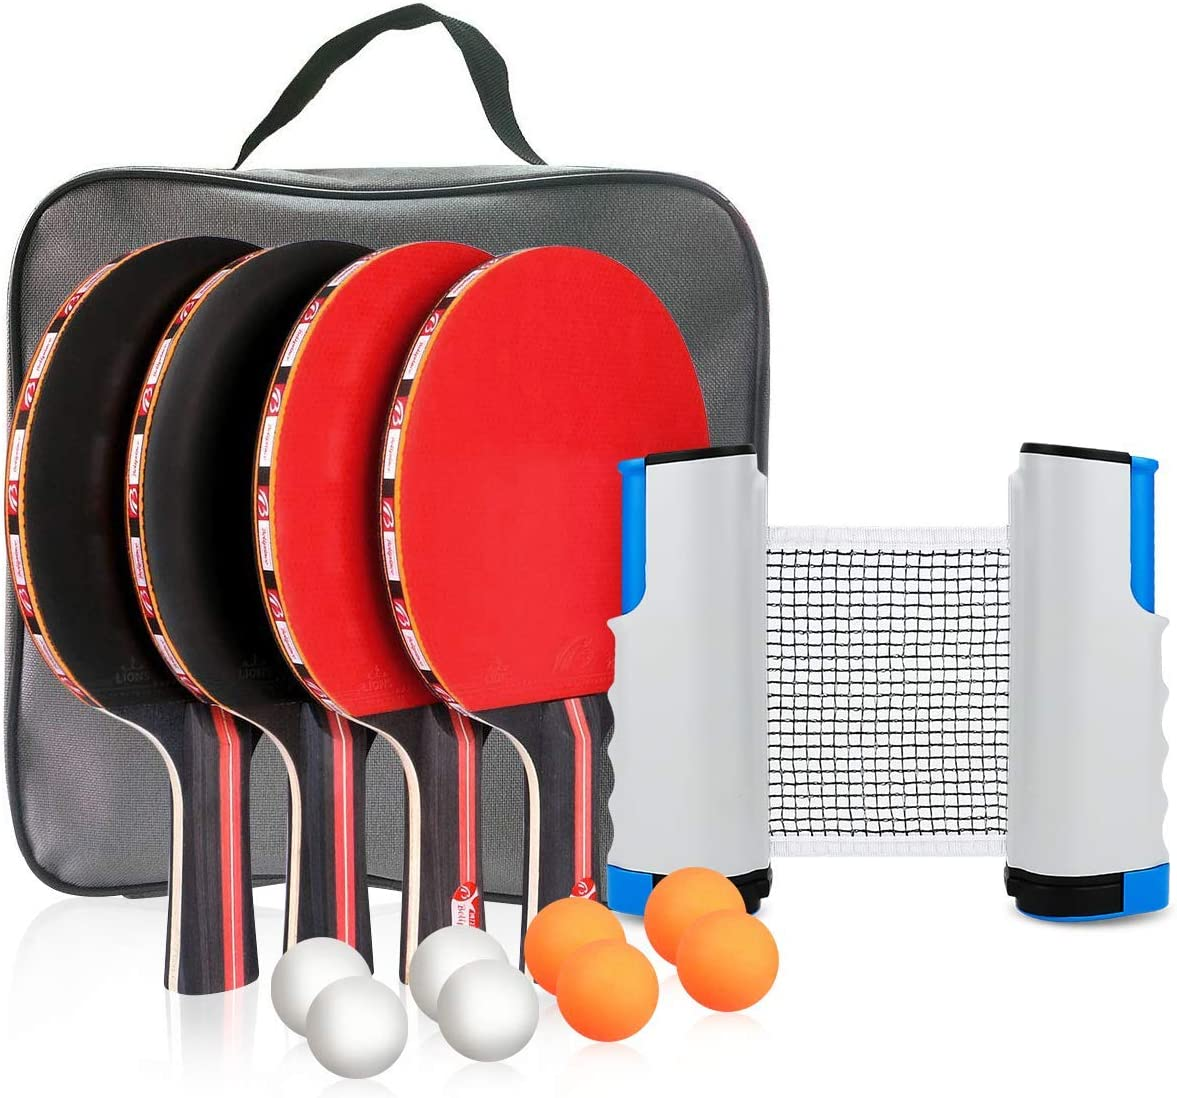 Number-one Ping Pong Set Portable Table Tennis Set Ping-Pong Game Pingpong Racket Set for Table Tennis Training with 4 Table Tennis Bats Rackets Paddles, 8 Ping-Pong Balls, 1 Retractable Table Tennis